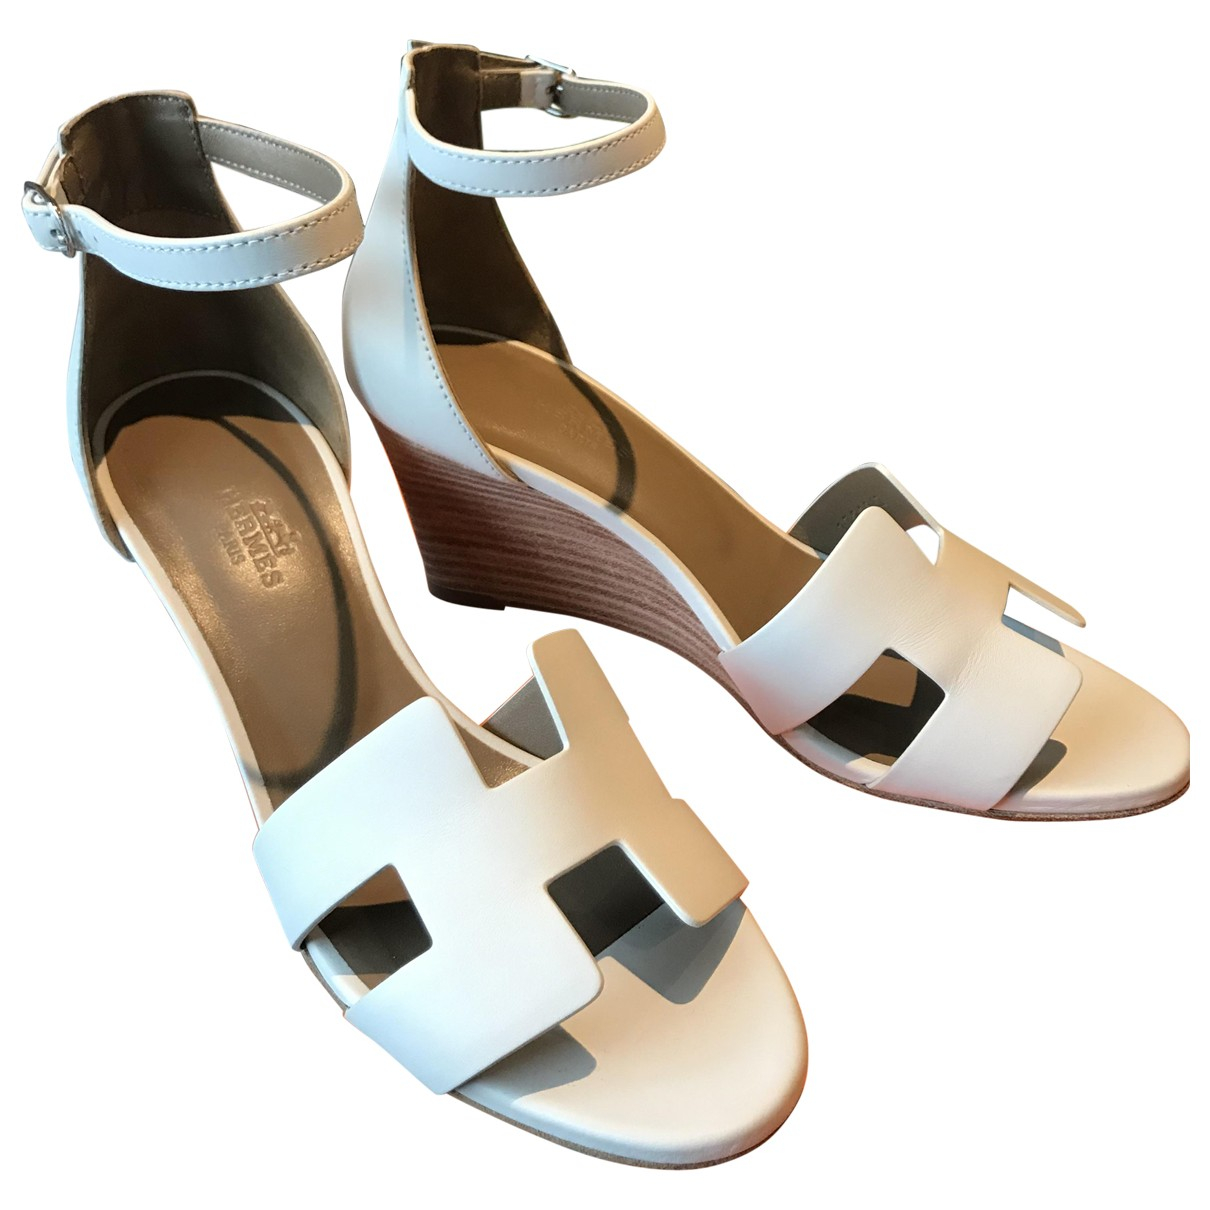 Hermès Legend White Leather Sandals for Women 37 EU